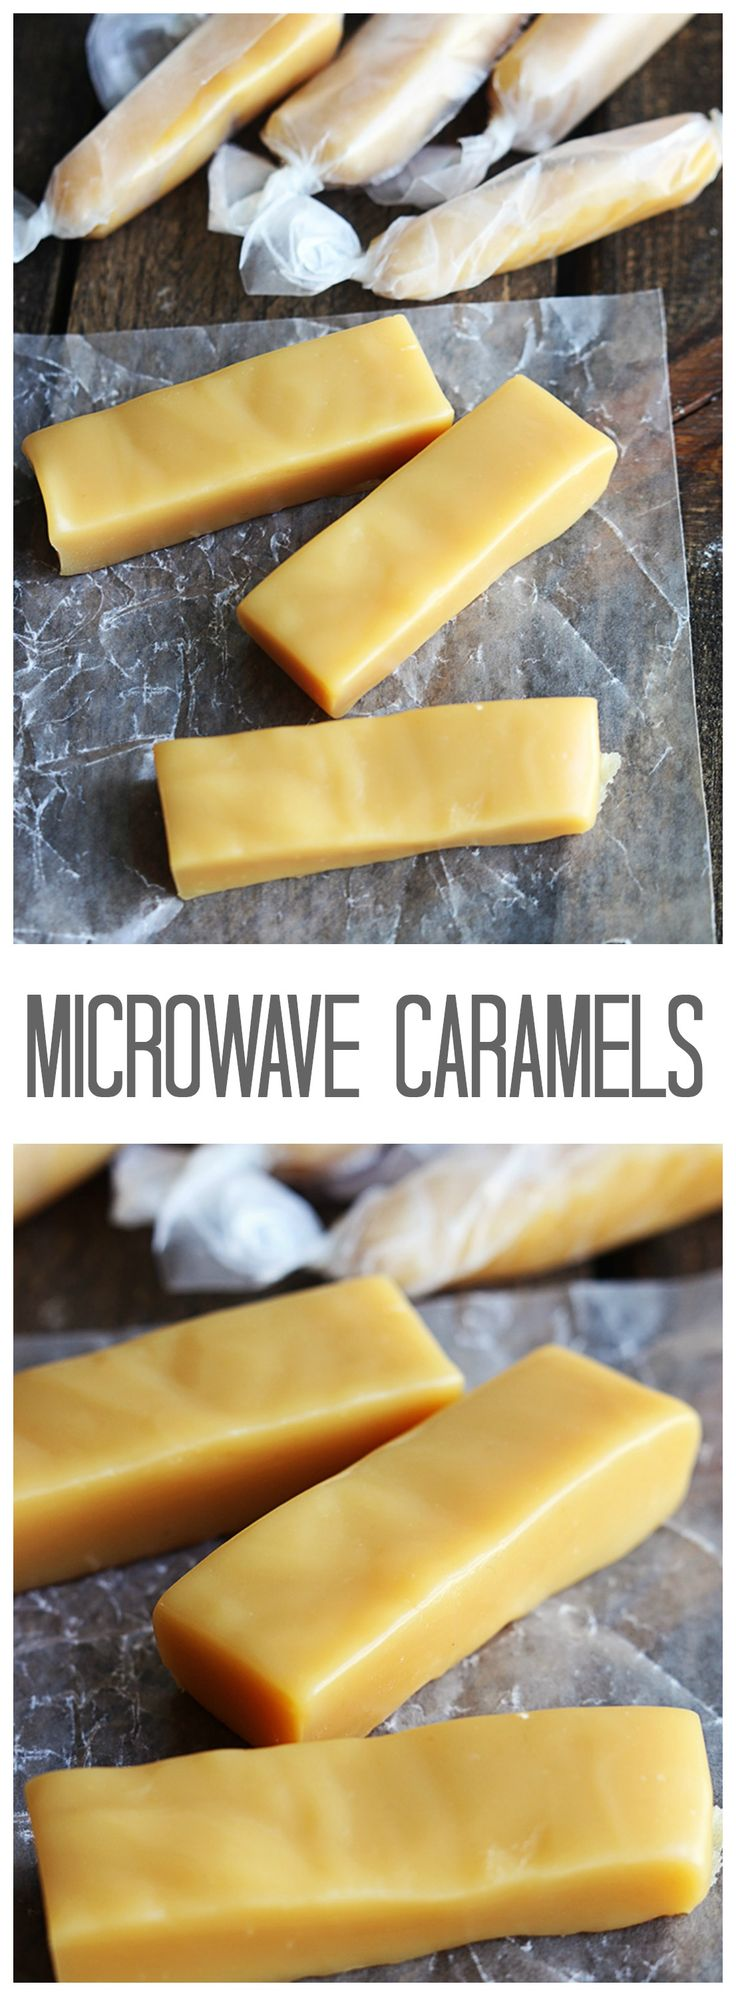 Microwave Caramels are the most chewy and delicious caramels and made right in your microwave! So easy!